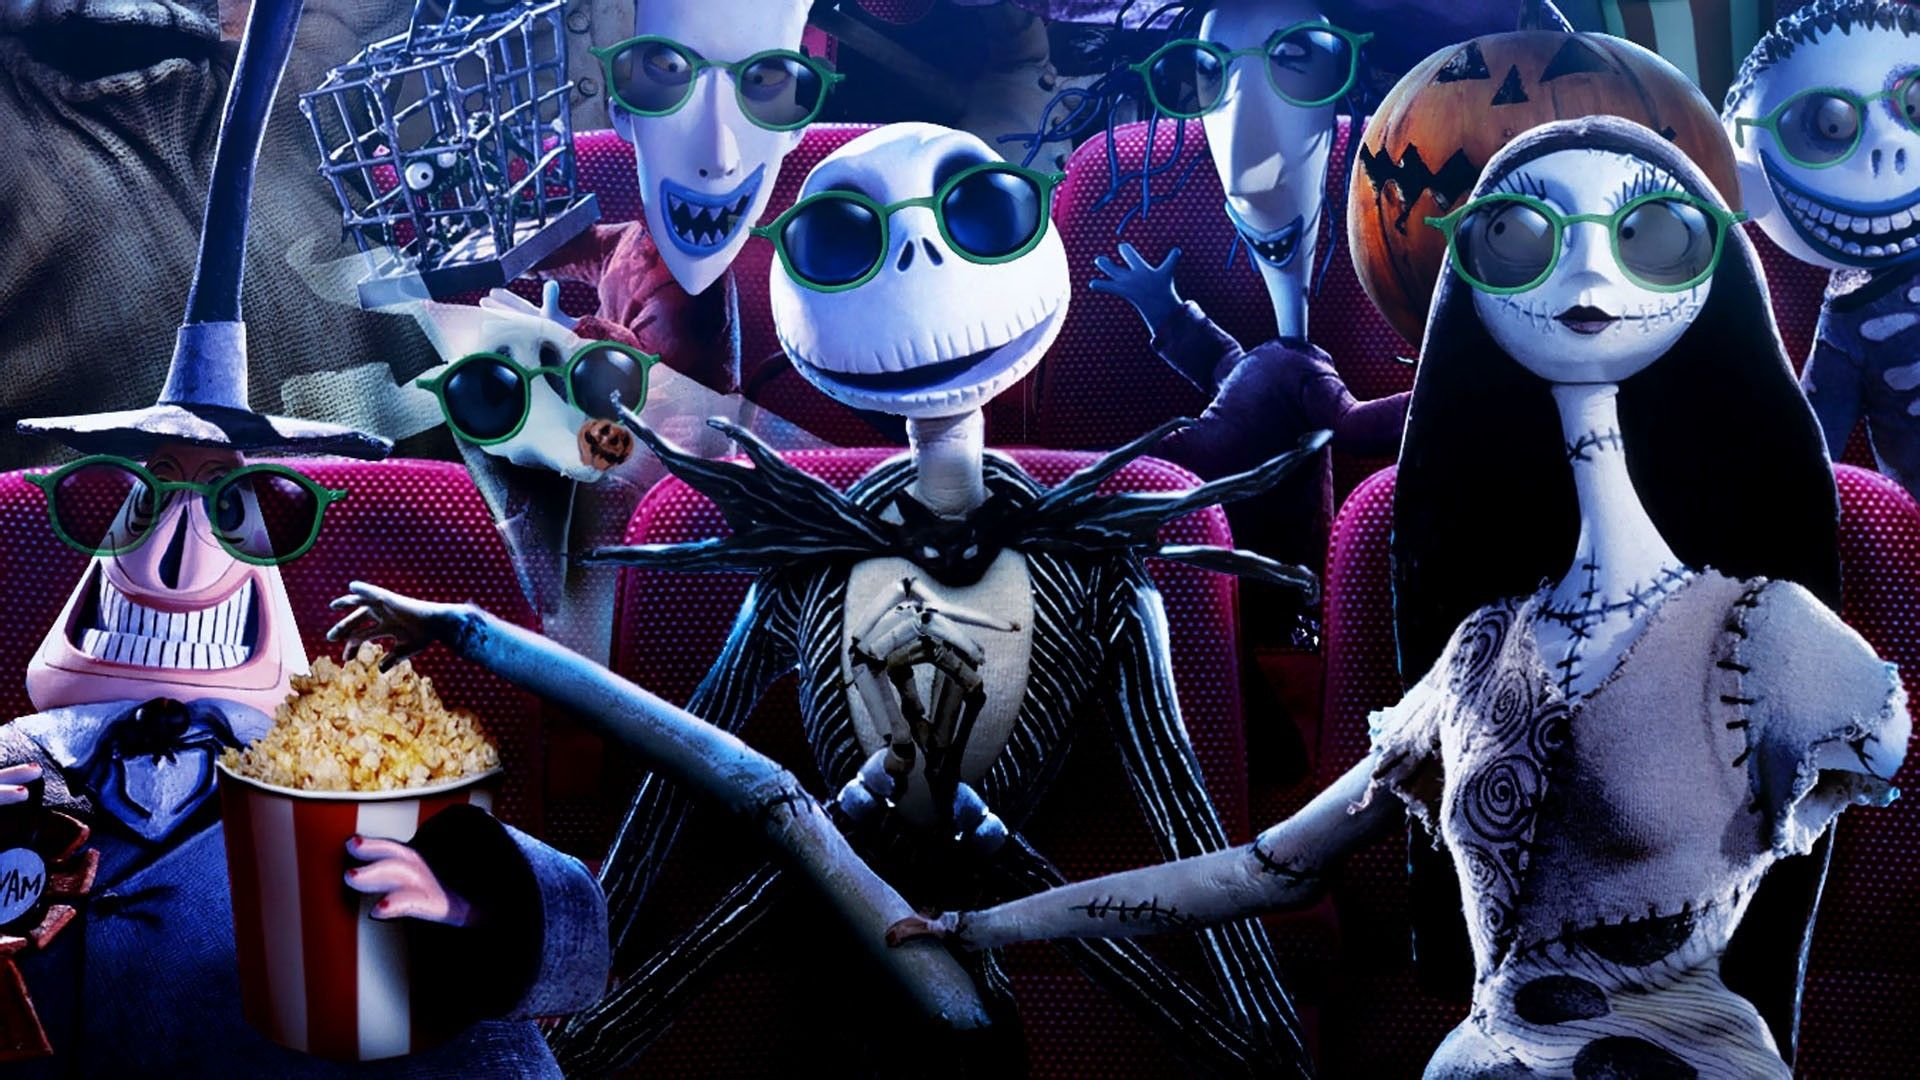 72 Nightmare Before Christmas Wallpaper Hd On Wallpapersafari